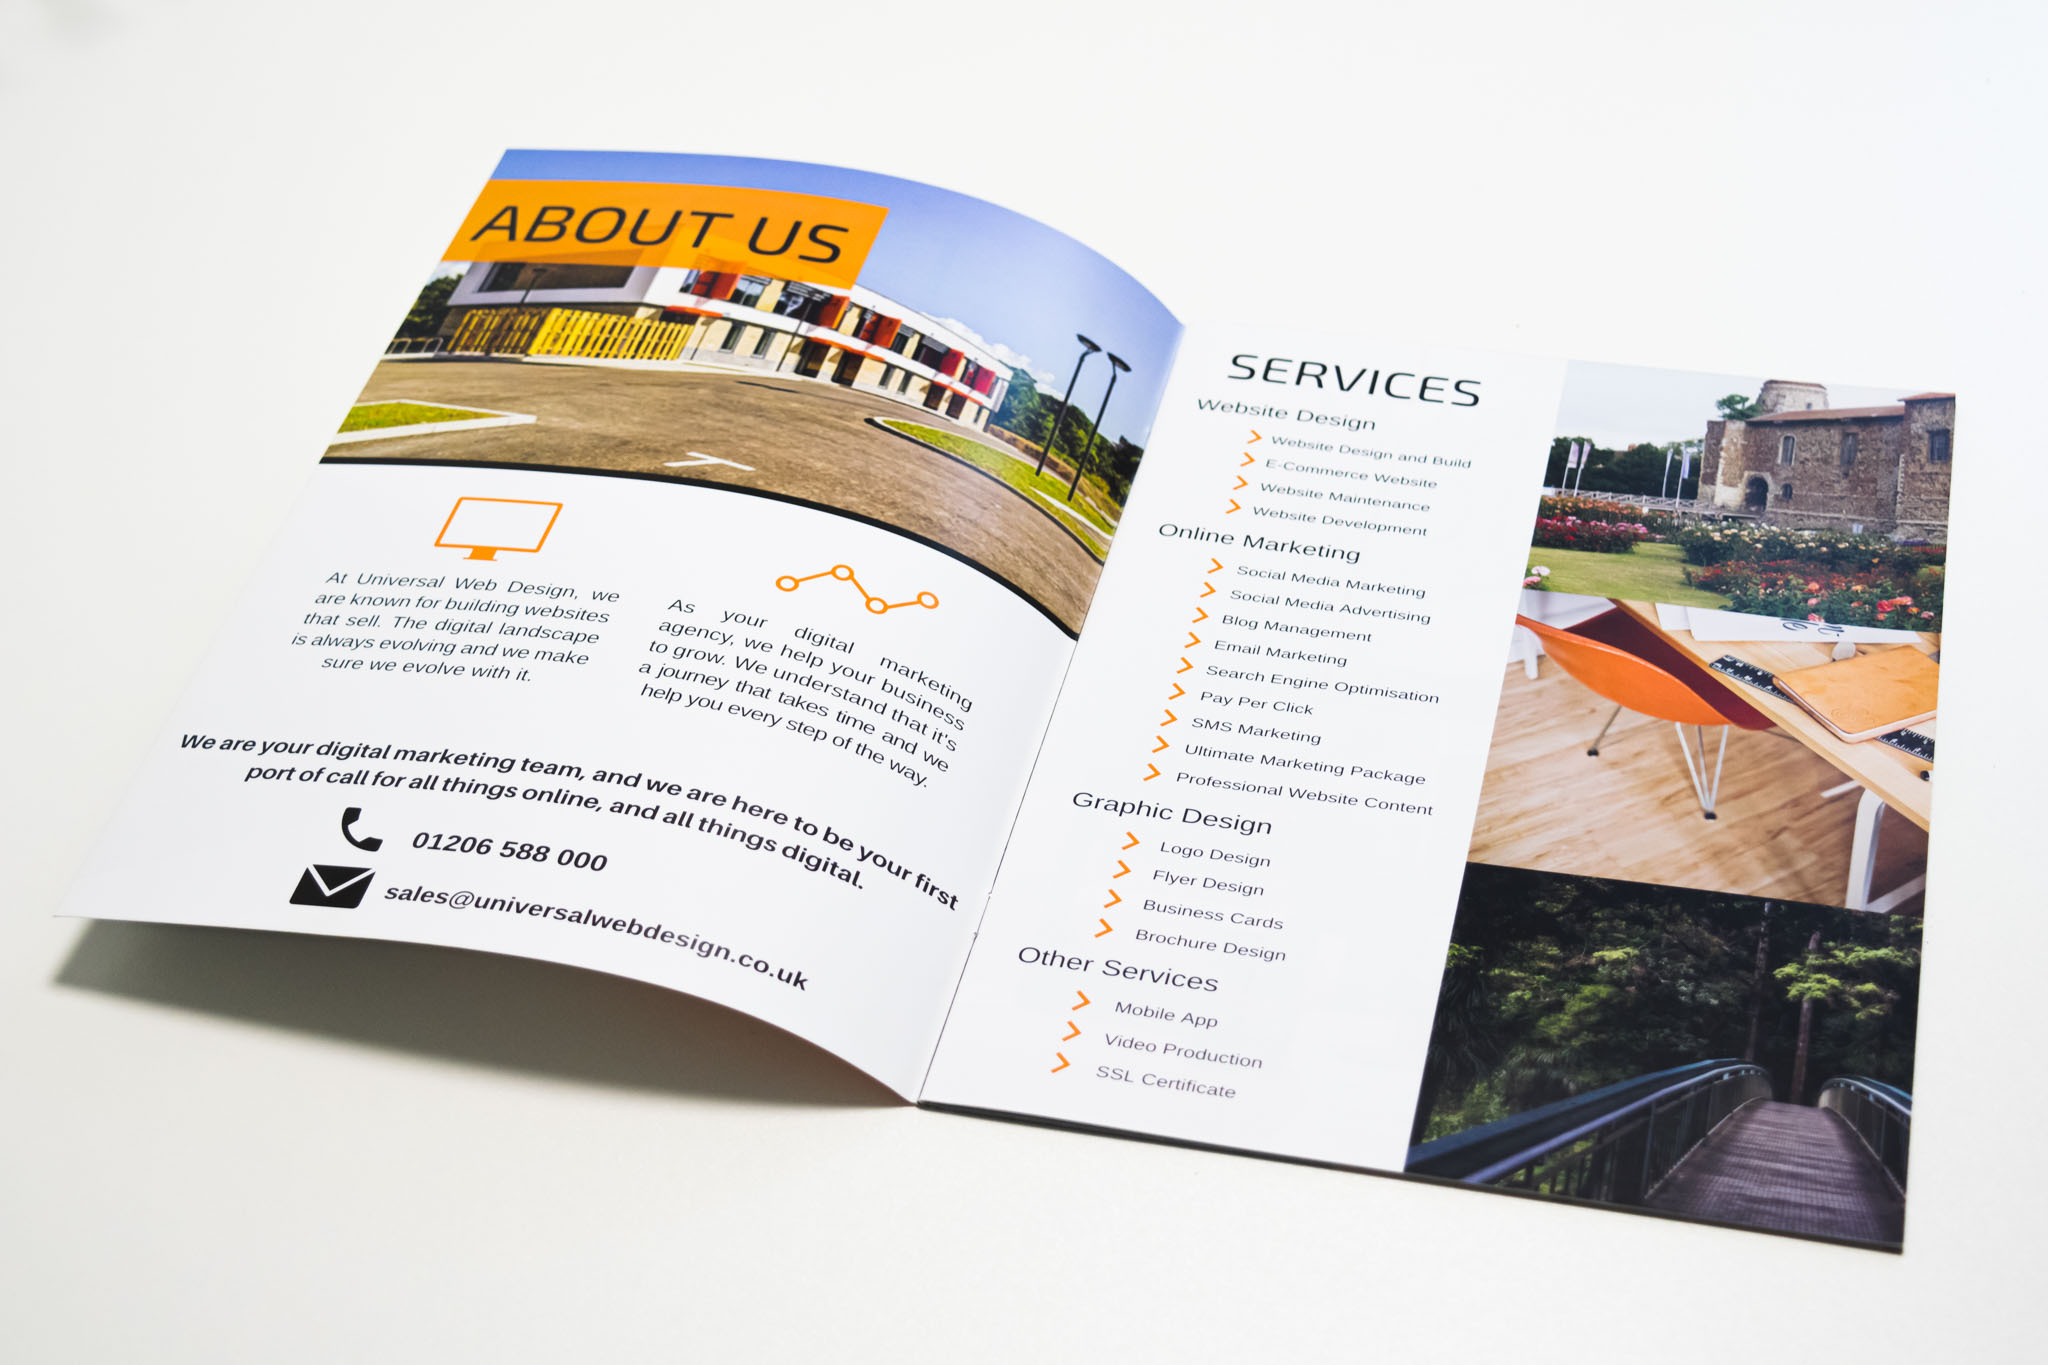 Universal Web Design Brochure